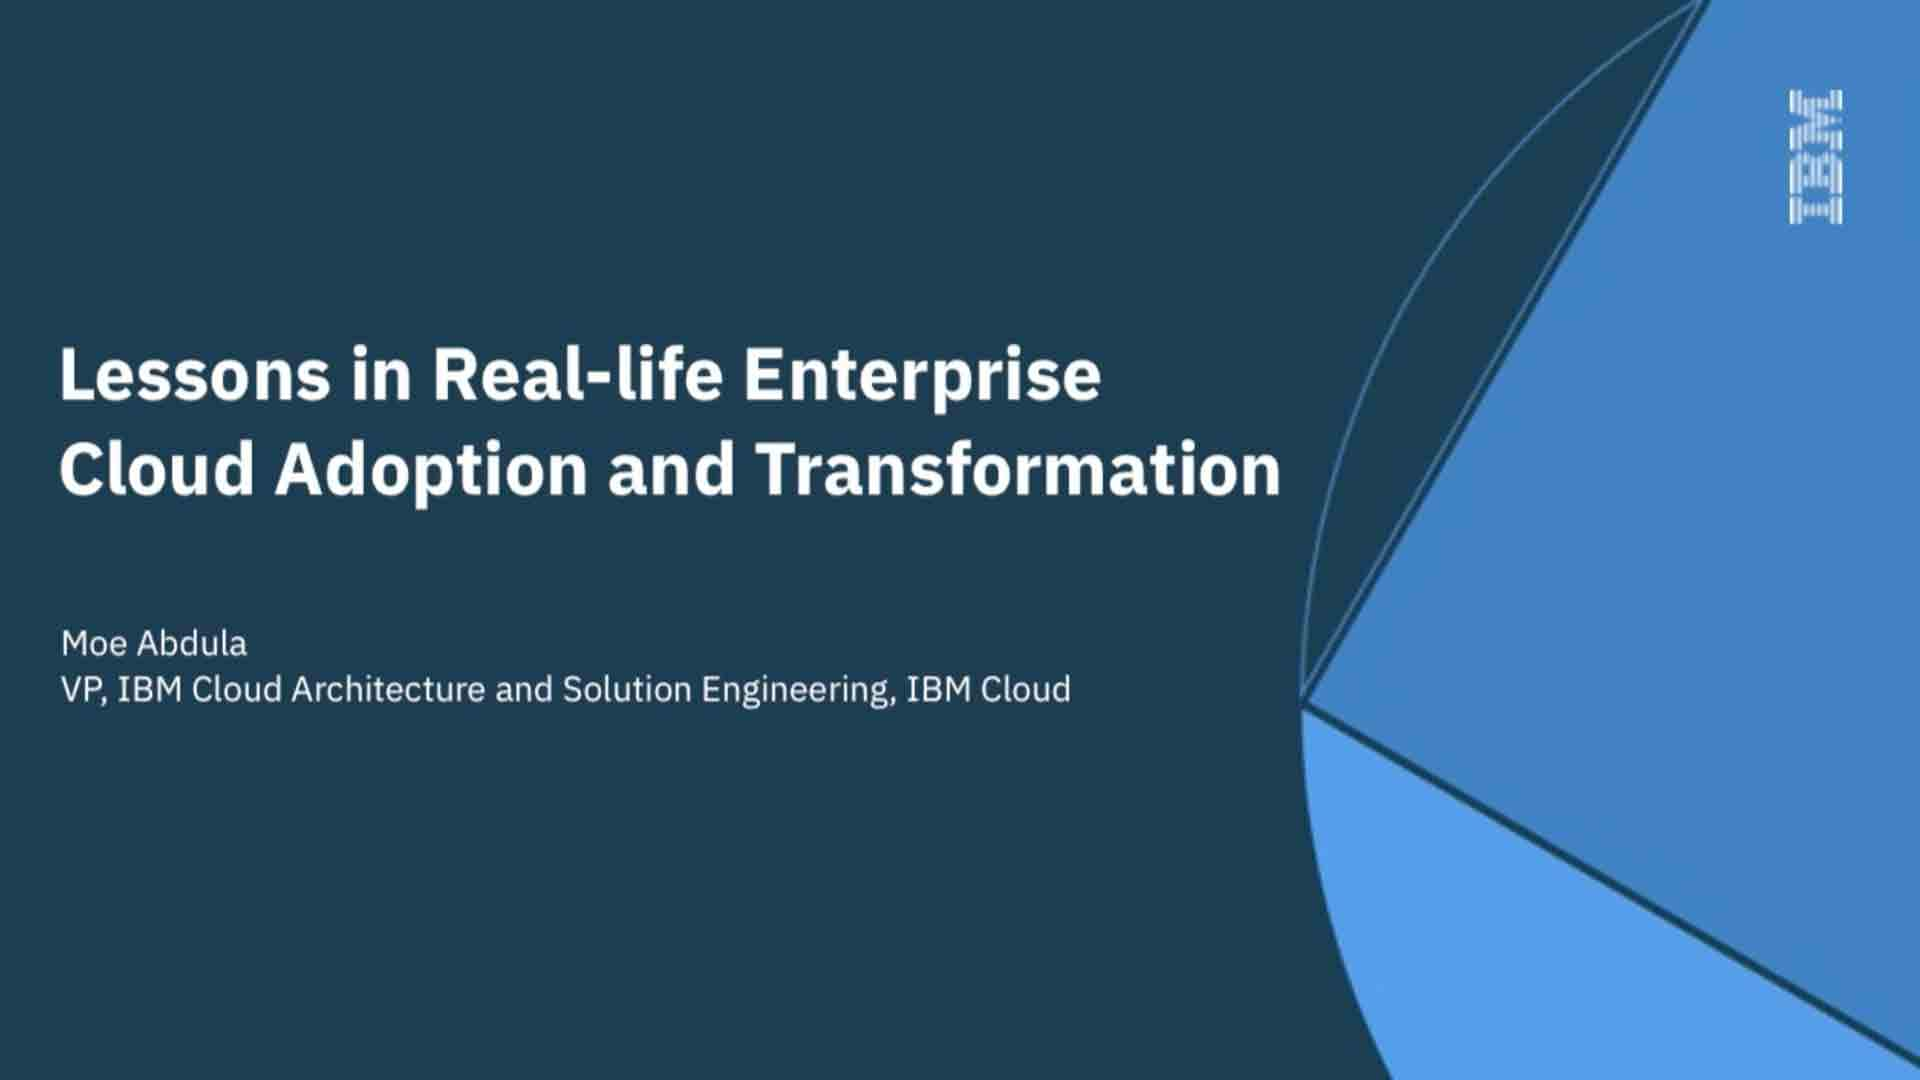 Lessons in Real-life Enterprise Cloud Adoption and Transformation